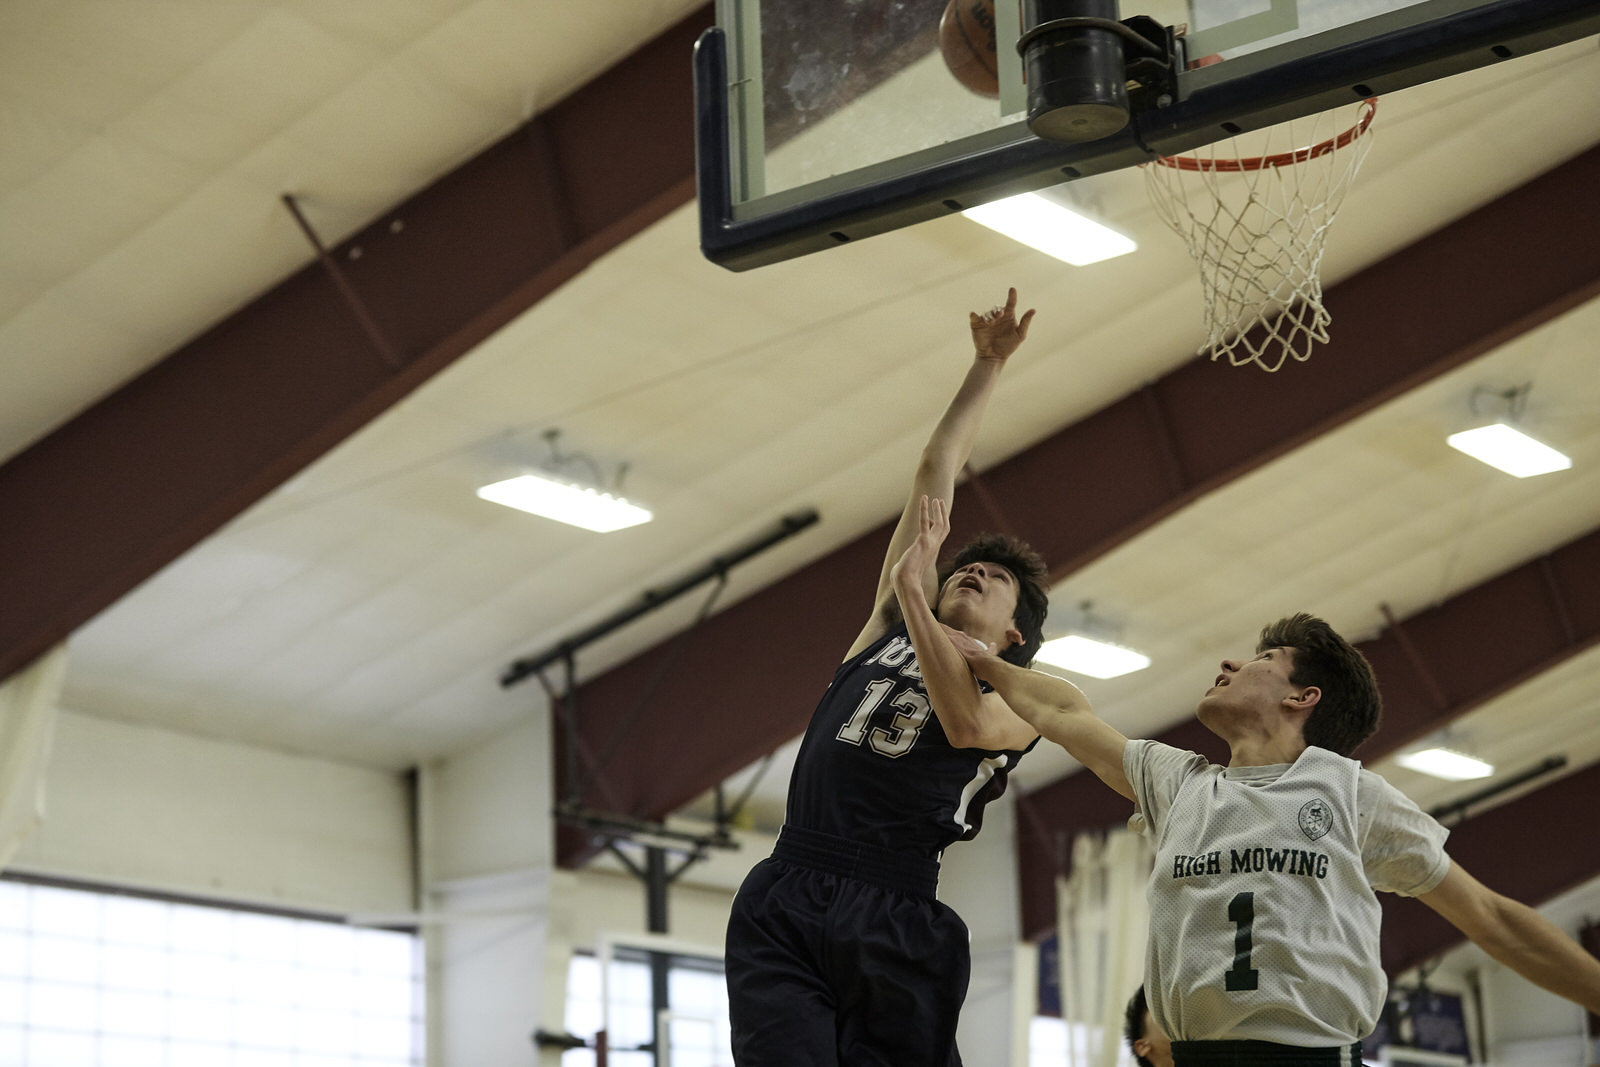 Dublin JV Boys Basketball vs High Mowing School - Jan 26 2019 - 0154.jpg